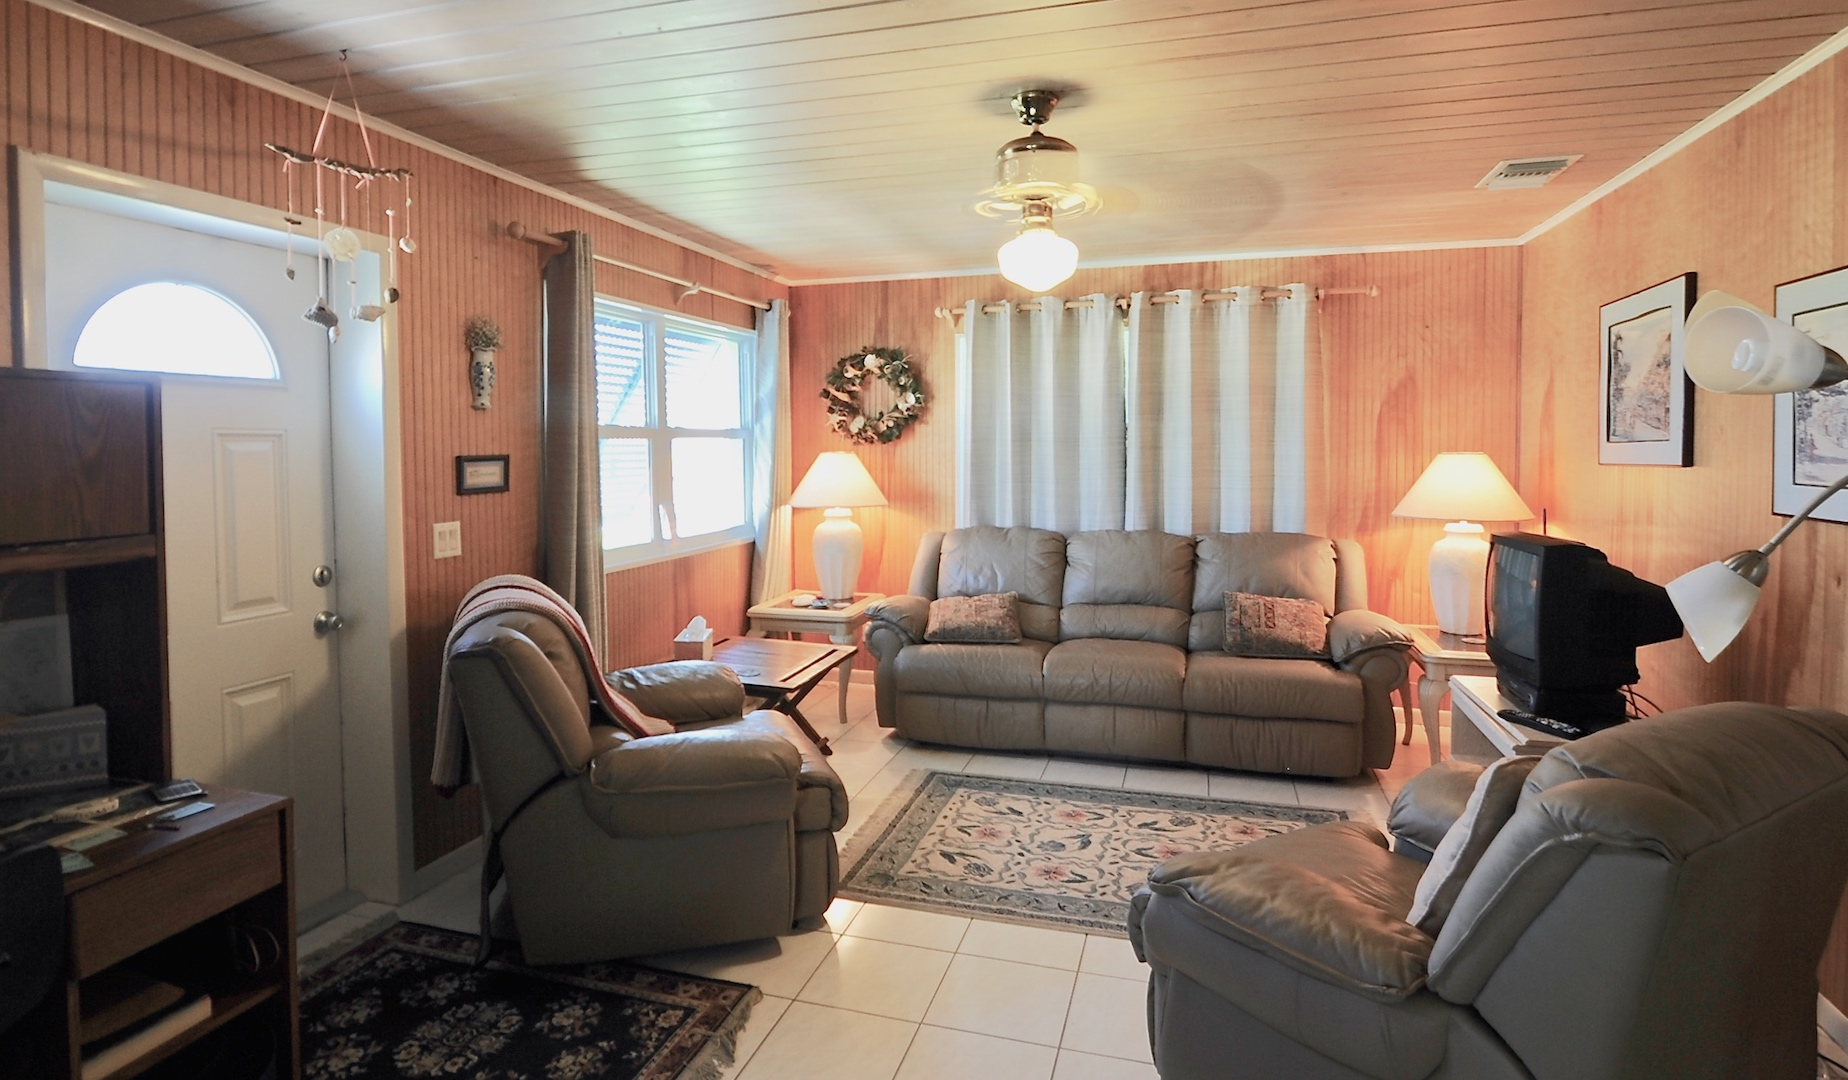 home for sale in man-o-war cay abaco bahamas with v-joint ceilings